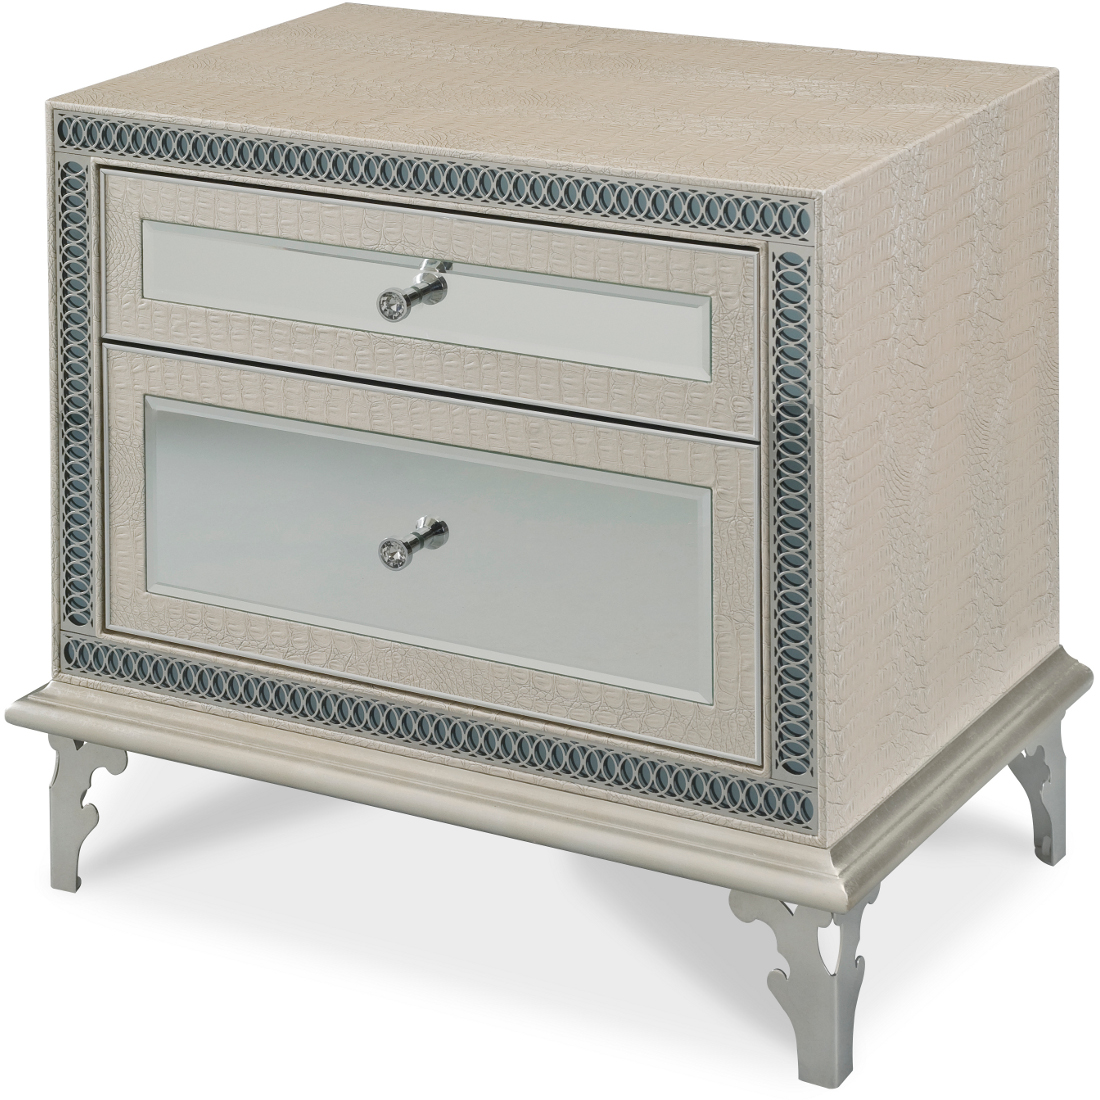 AICO Michael Amini Hollywood Swank Nightstand In Crystal Croc Qty: $1,299.00